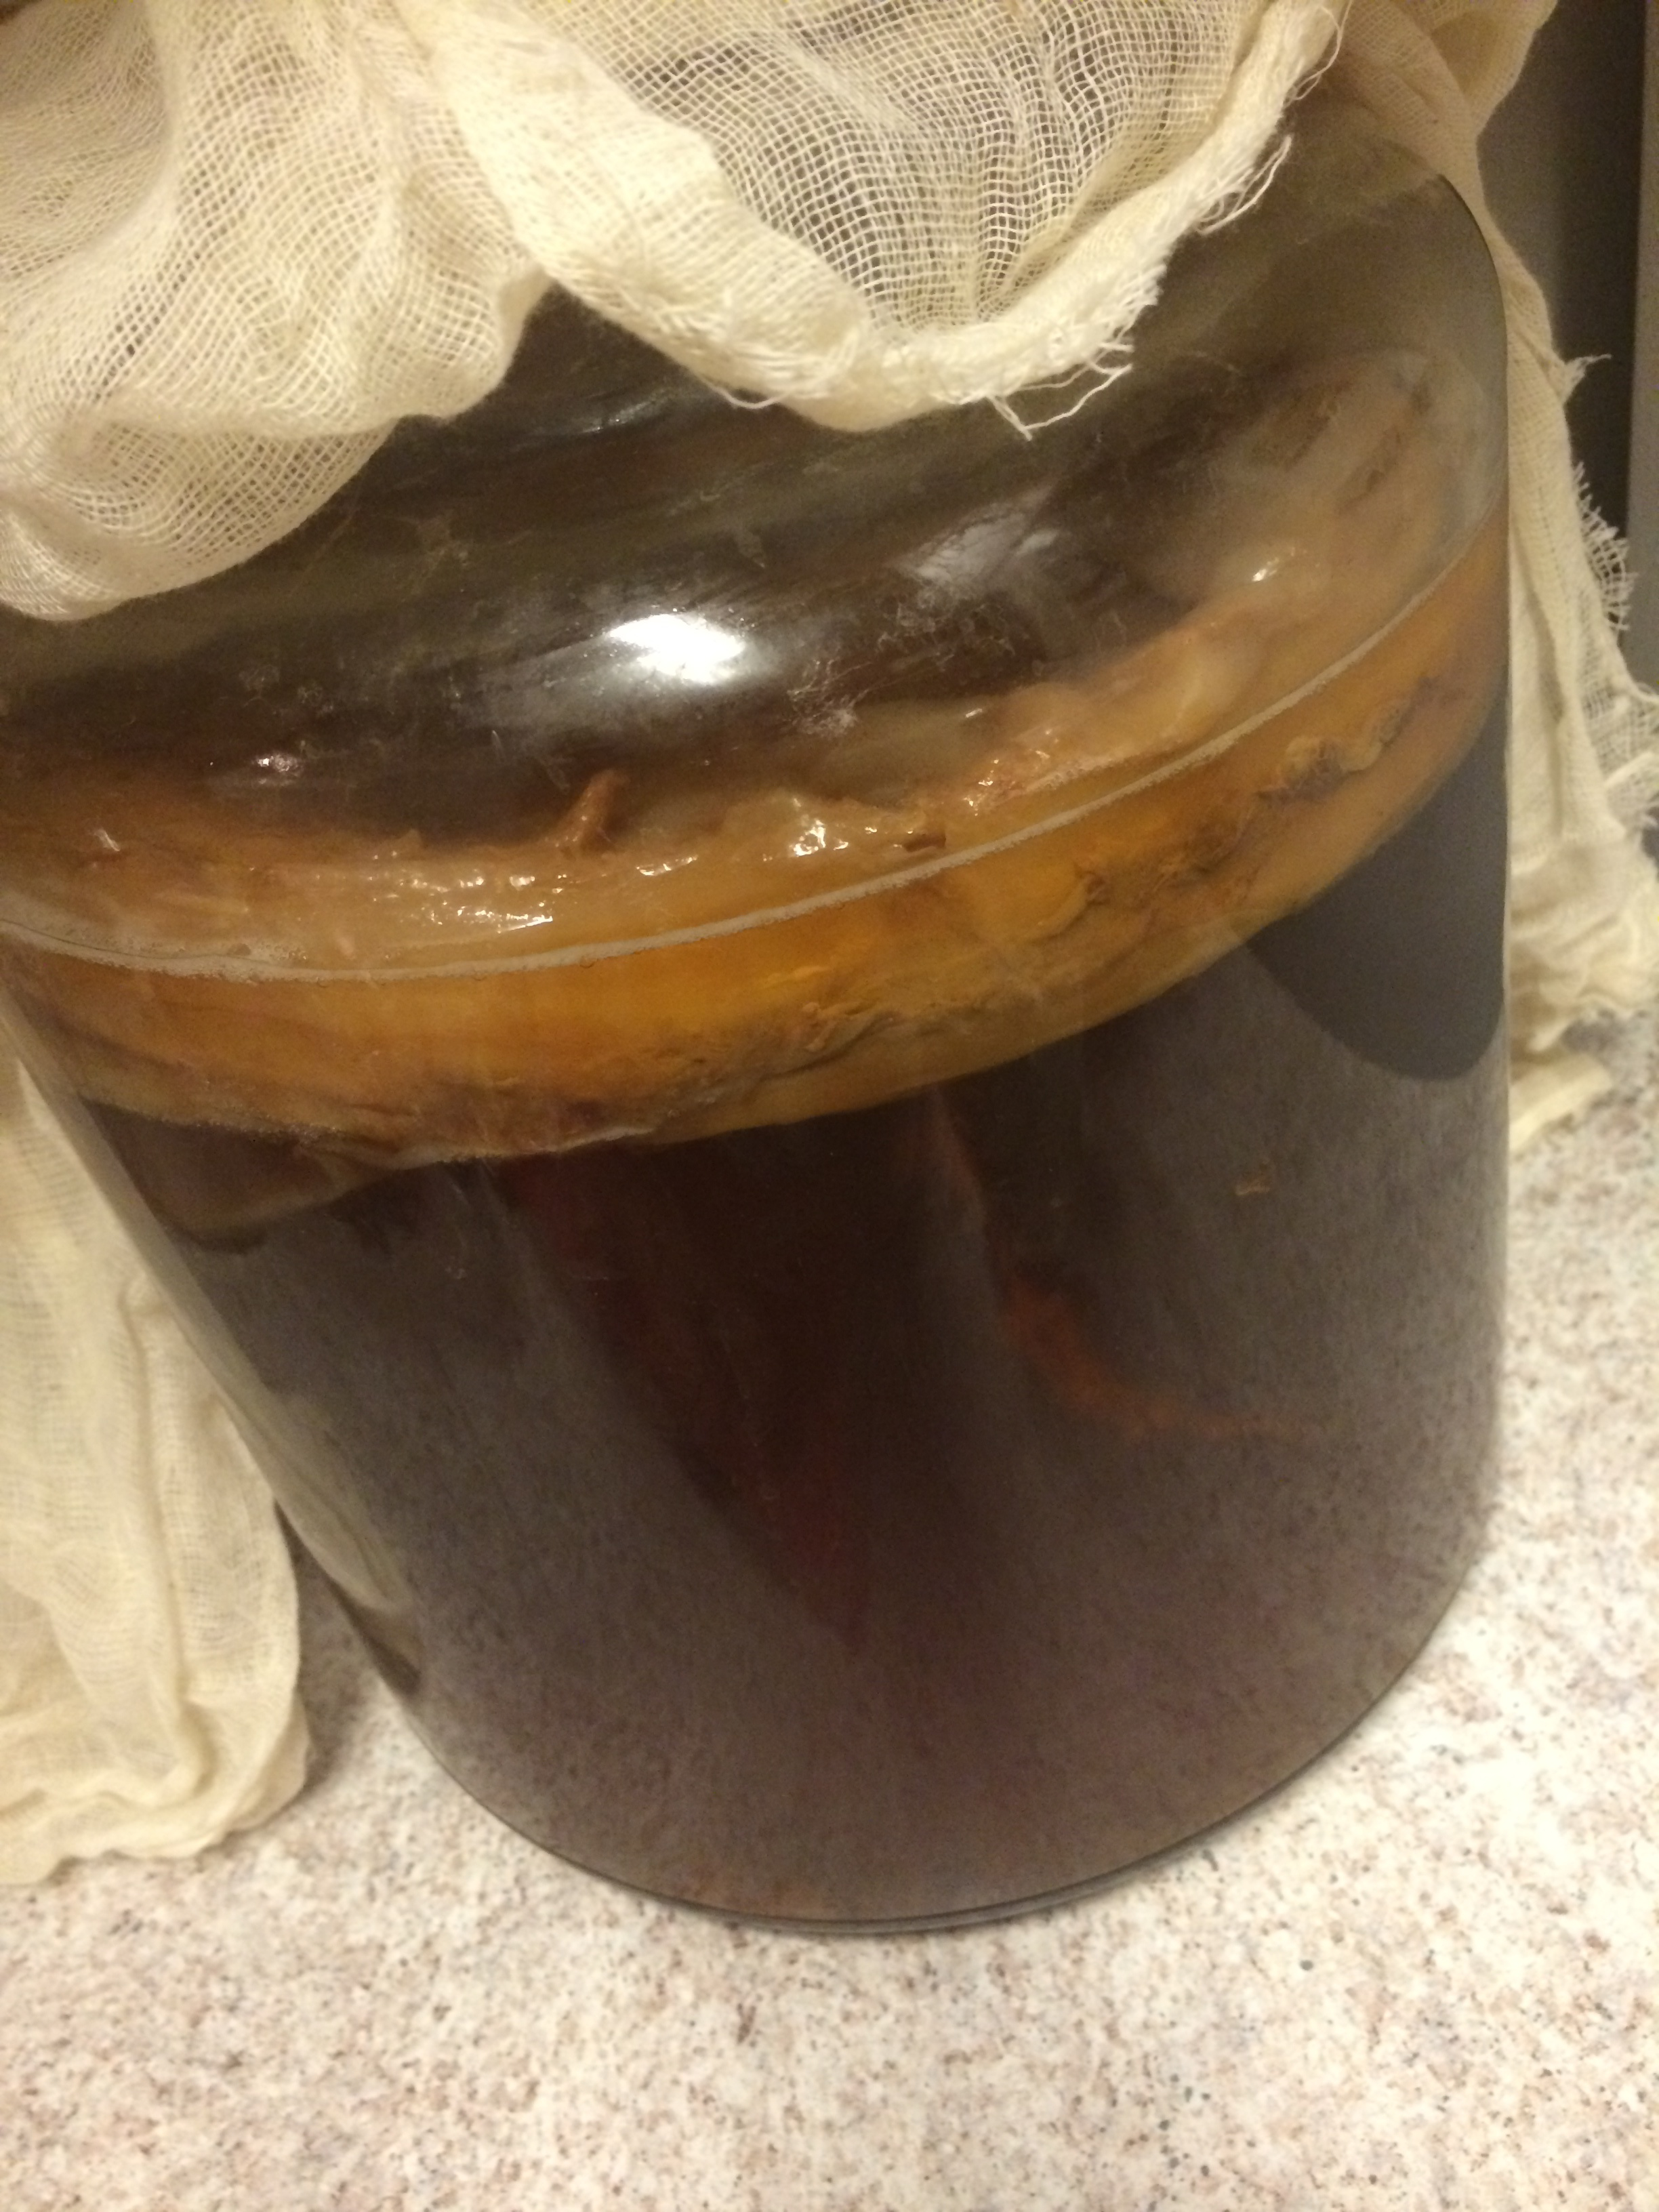 SCOBYs aren't the prettiest things